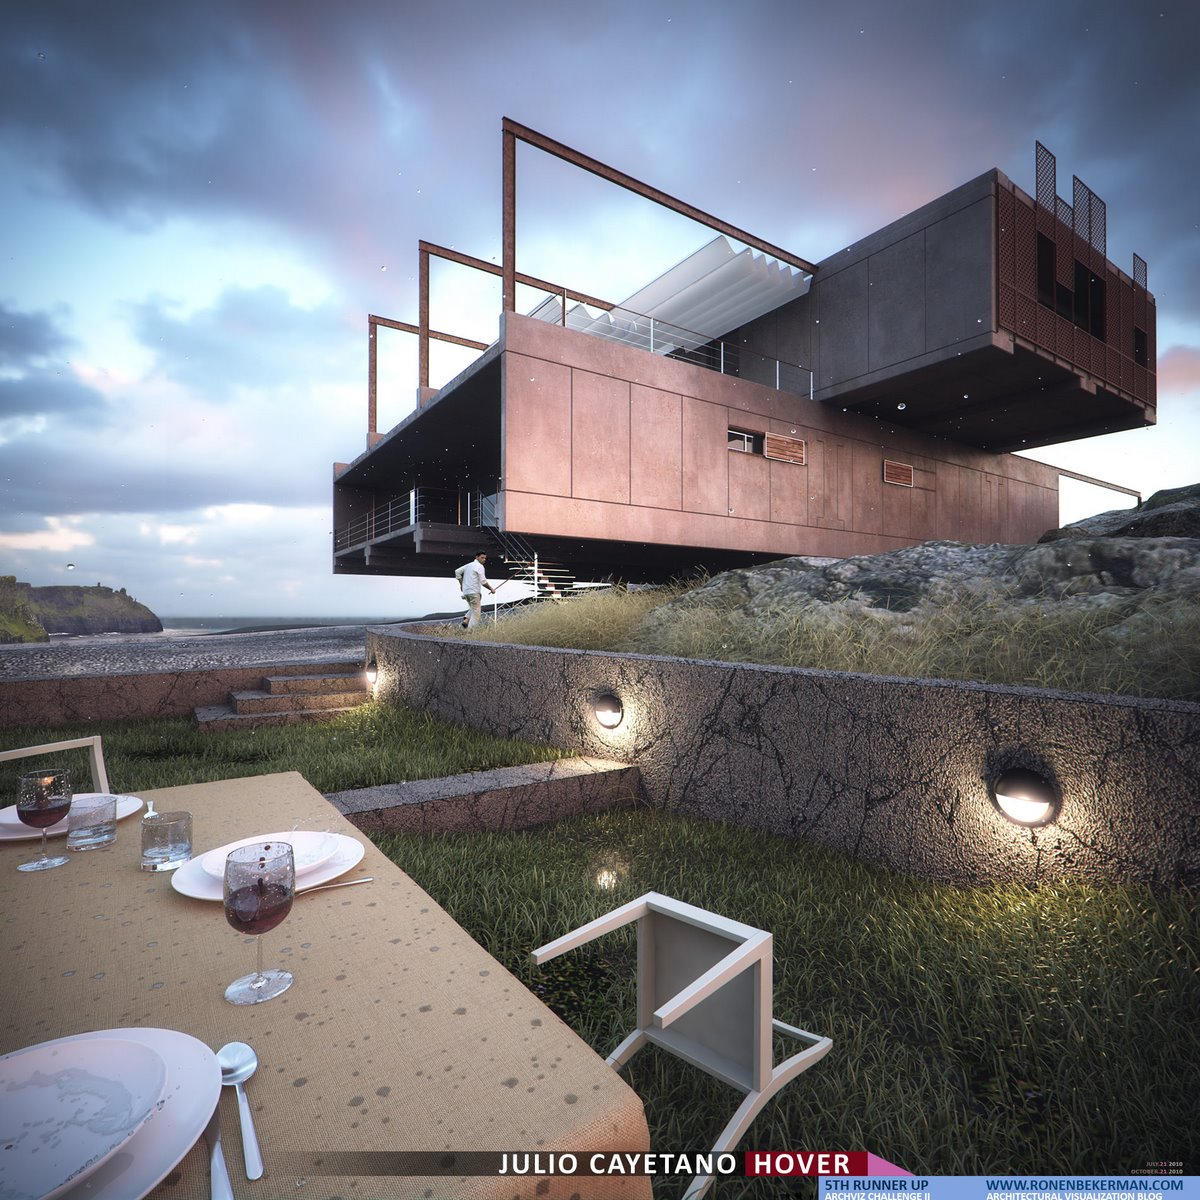 5th Runner Up - HOVER Architectural Visualization Challenge